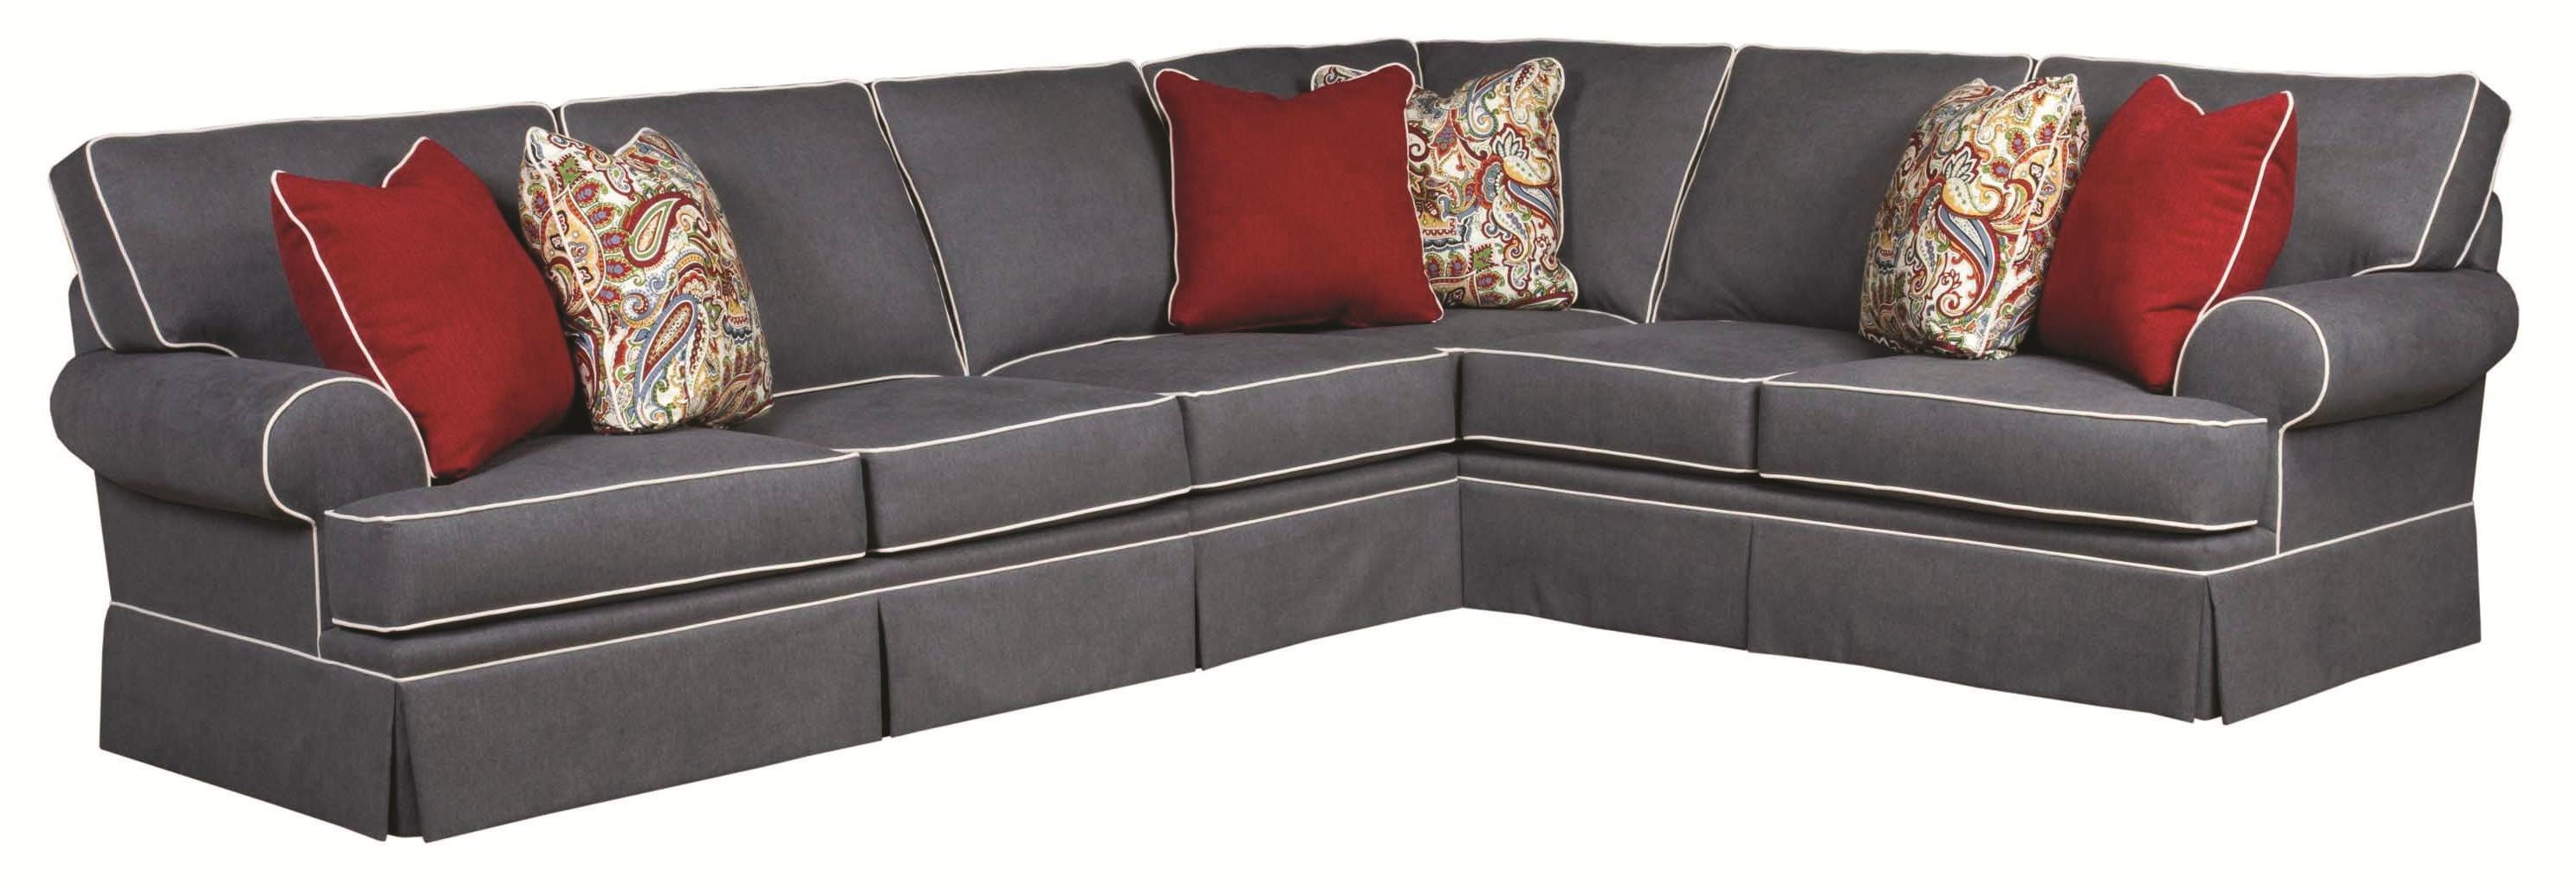 20 Best Collection Of Broyhill Emily Sofas Sofa Ideas